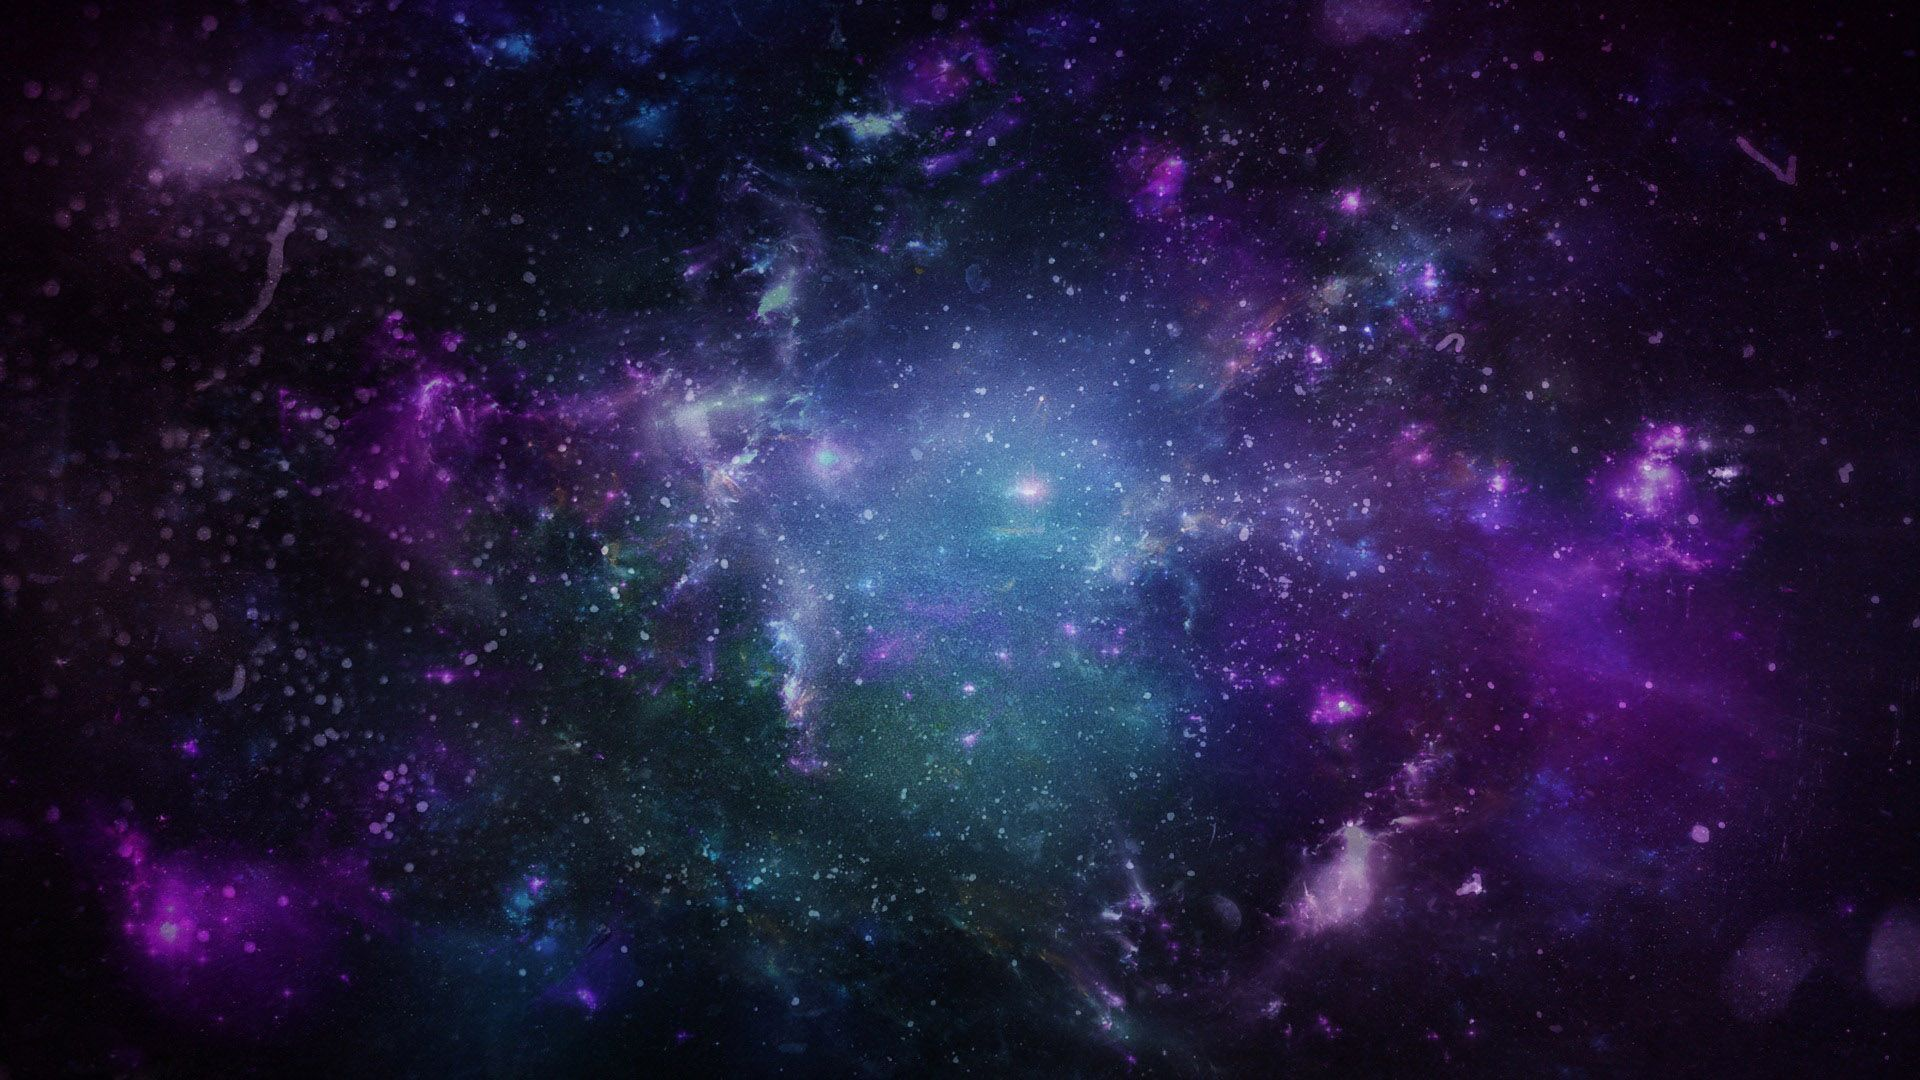 Galaxy wallpaper 17088 1920x1080